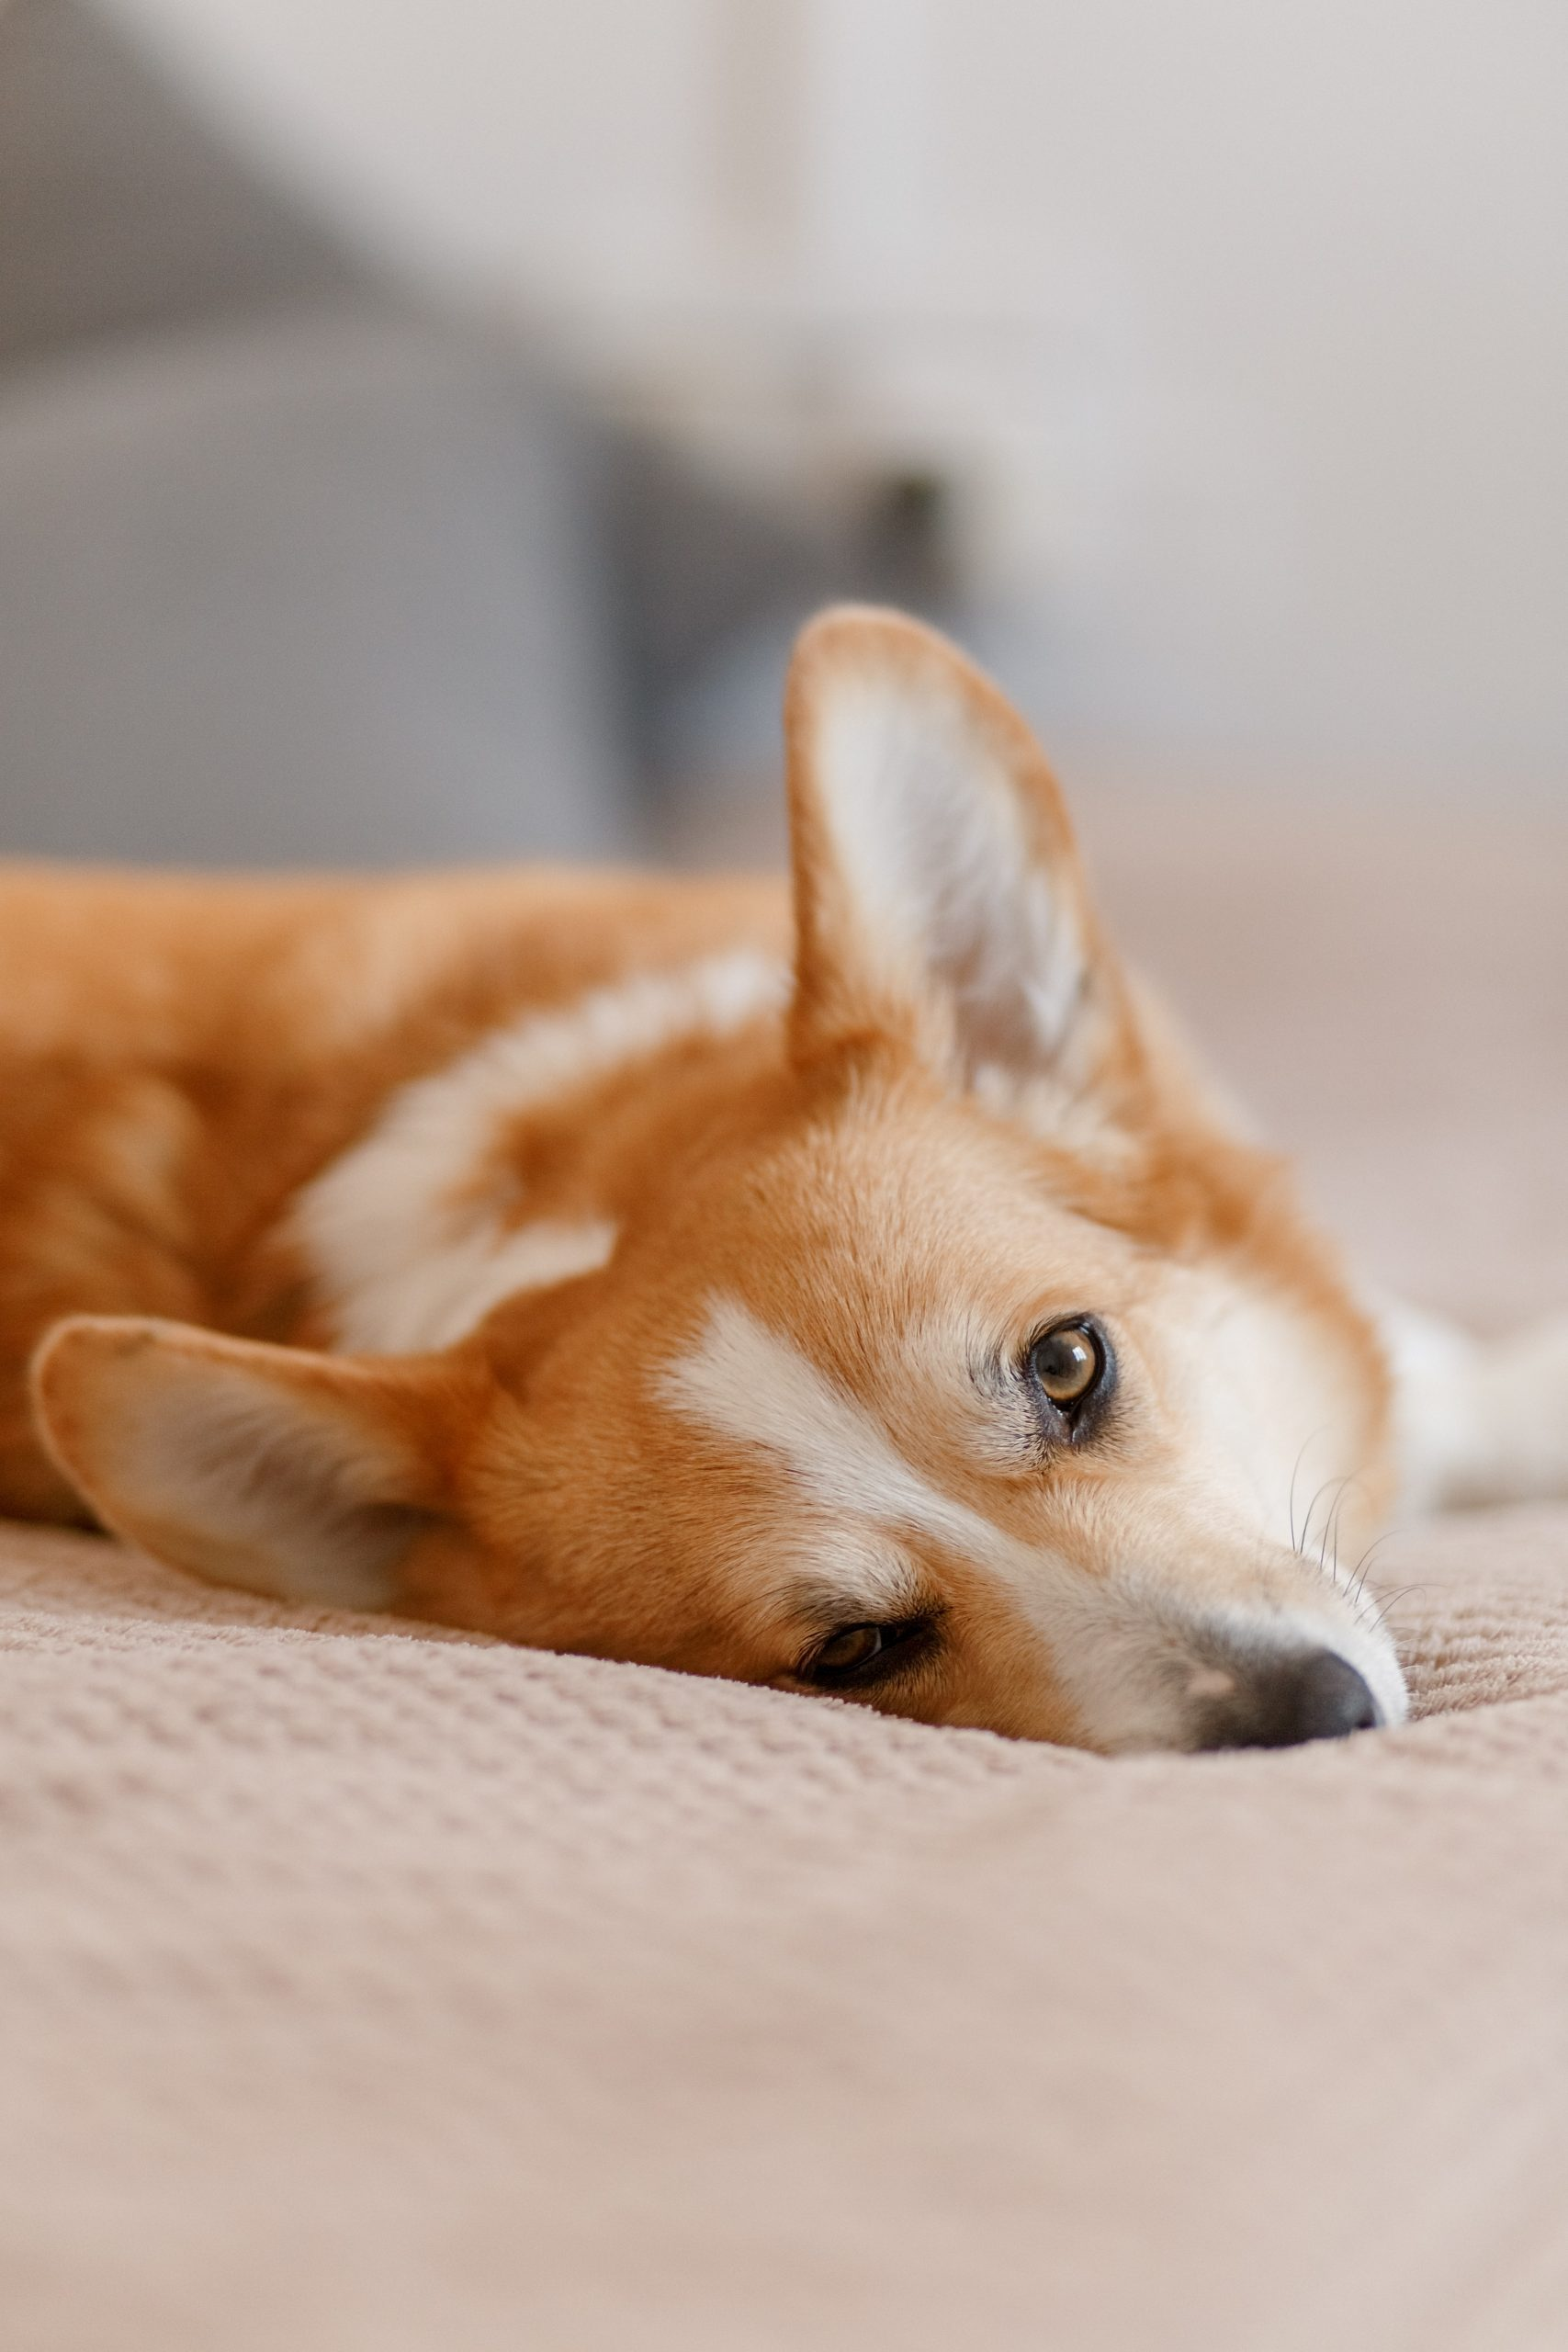 A Pembroke Welsh Corgi in bed staring lovingly at their human.